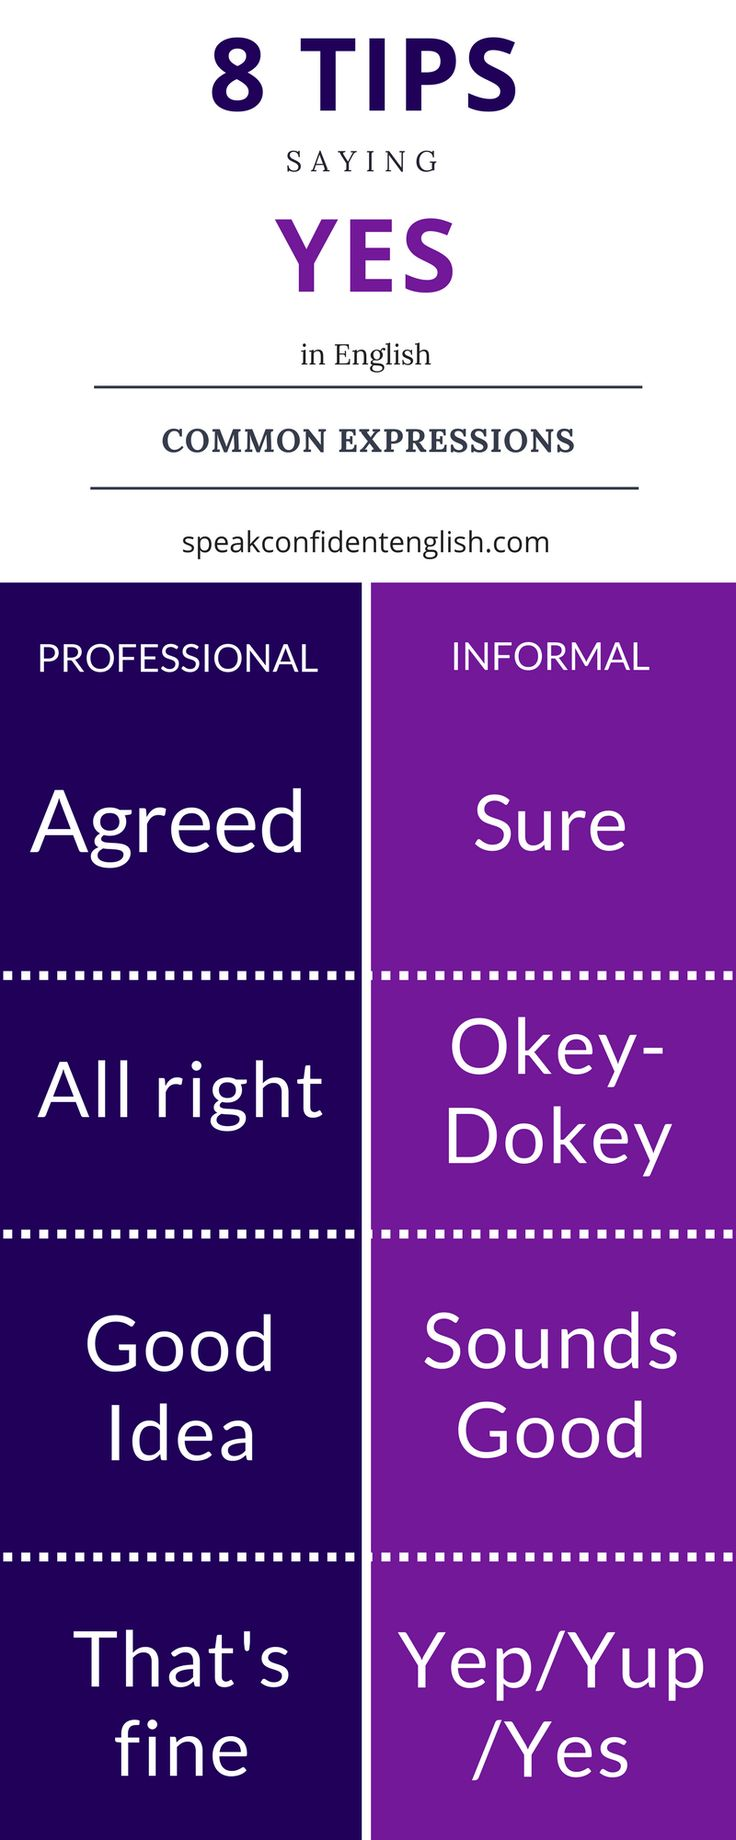 English vocabulary. Some useful words to add variety to your daily English at work and with friends. Share if you love it.